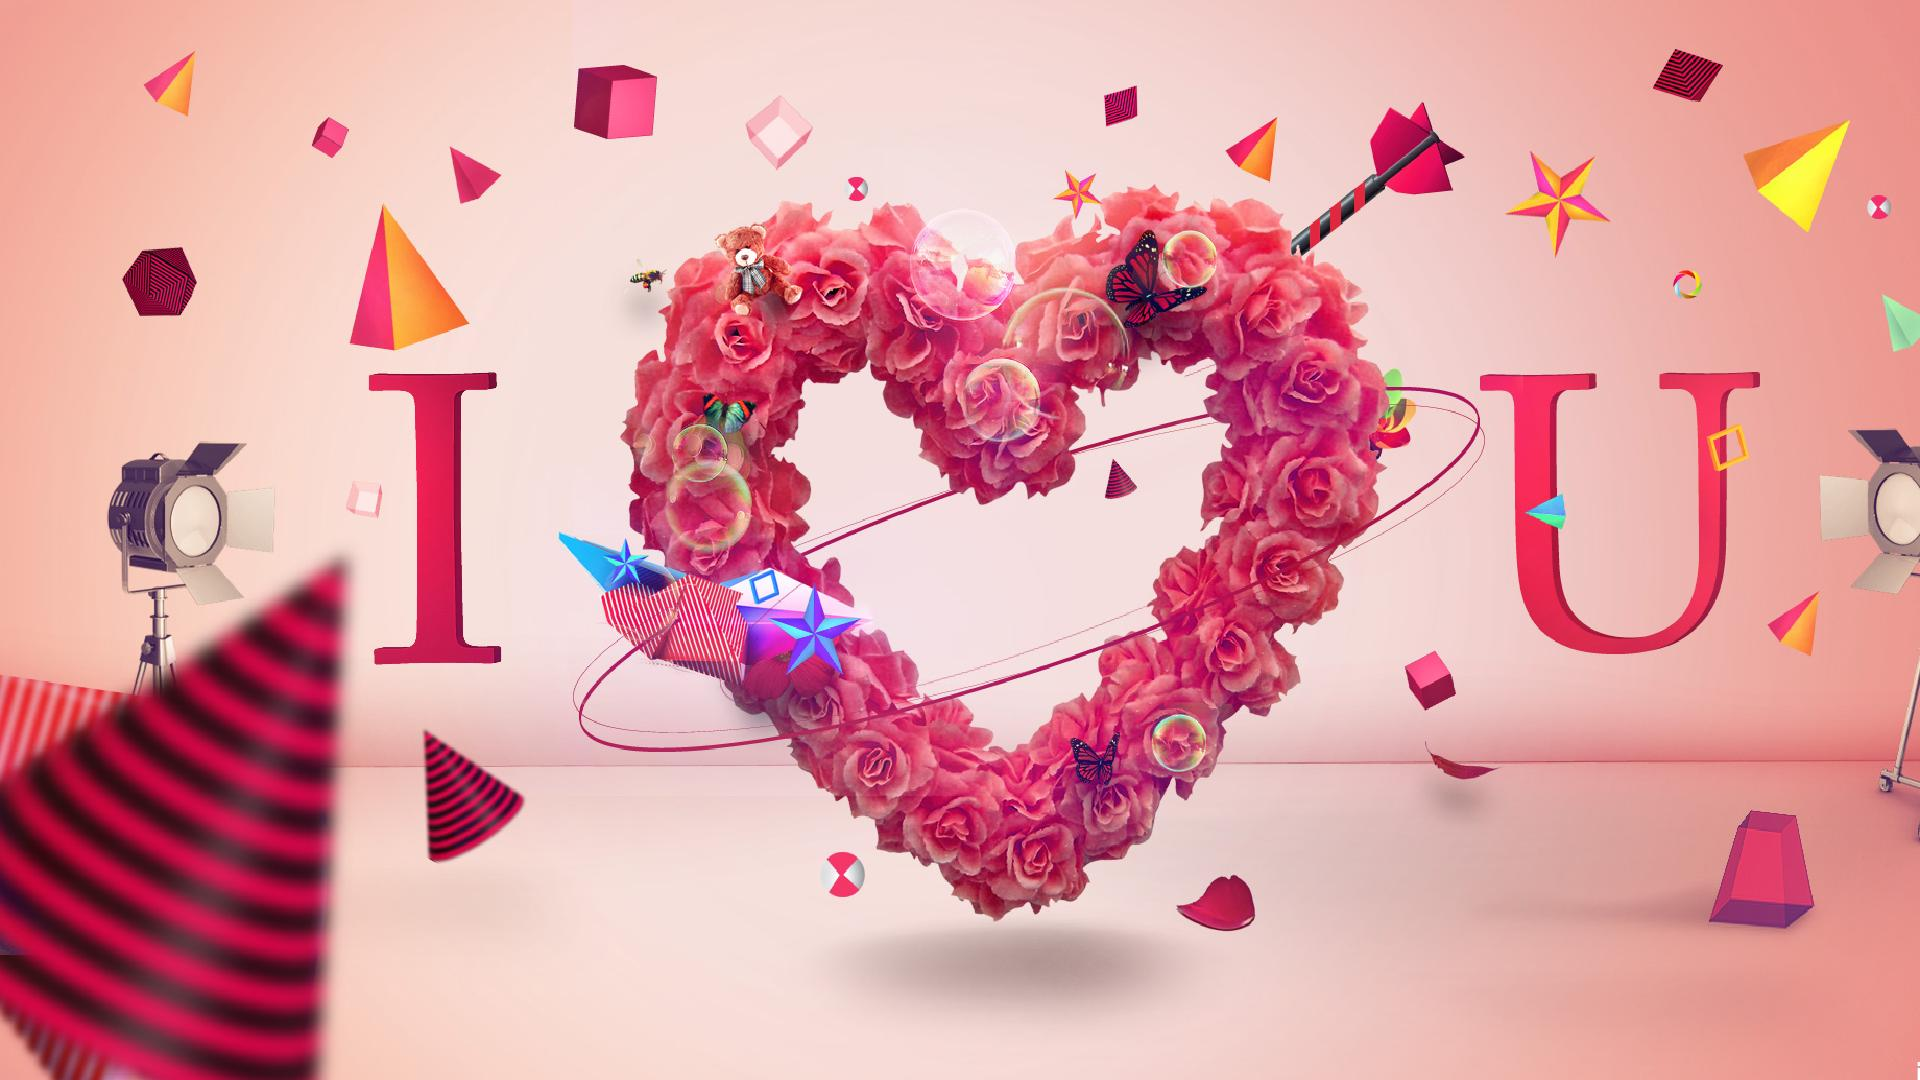 60+ The Beautiful Love Wallpaper For Backgrounds